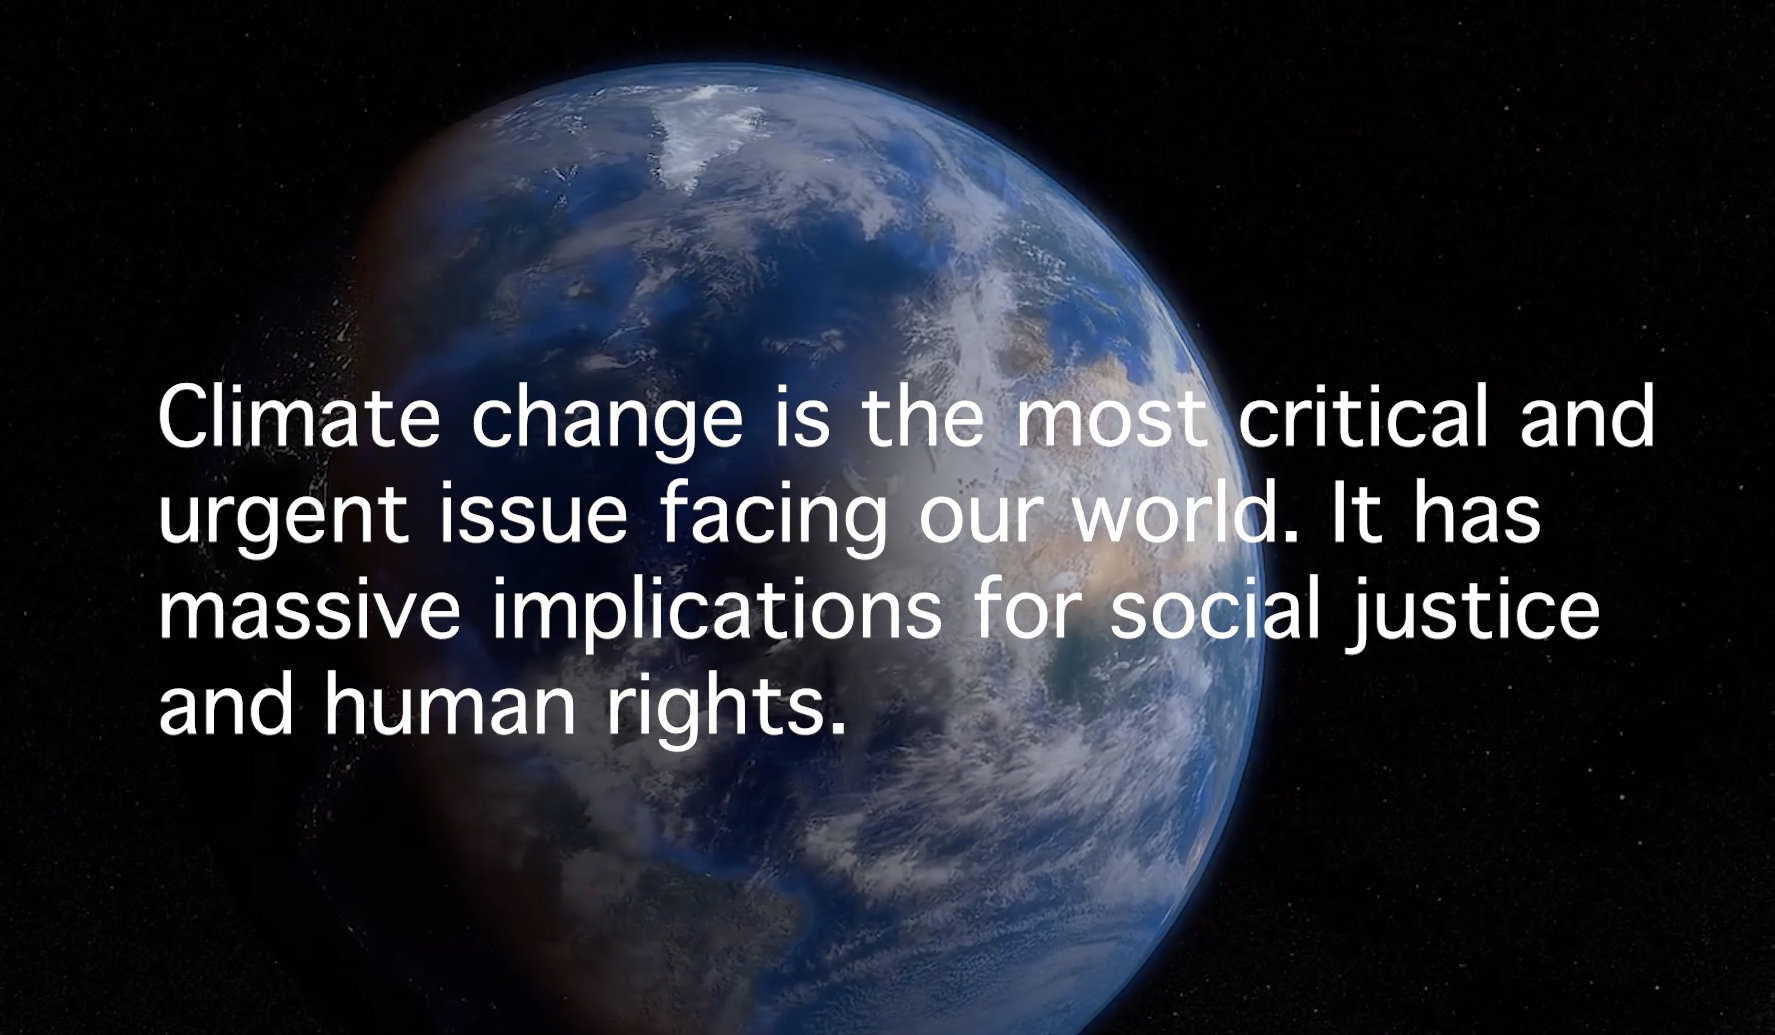 image of the planet earth from space with text that reads: climate change is the most critical and urgent issue facing our world. It has massive implications for social justice and human rights.